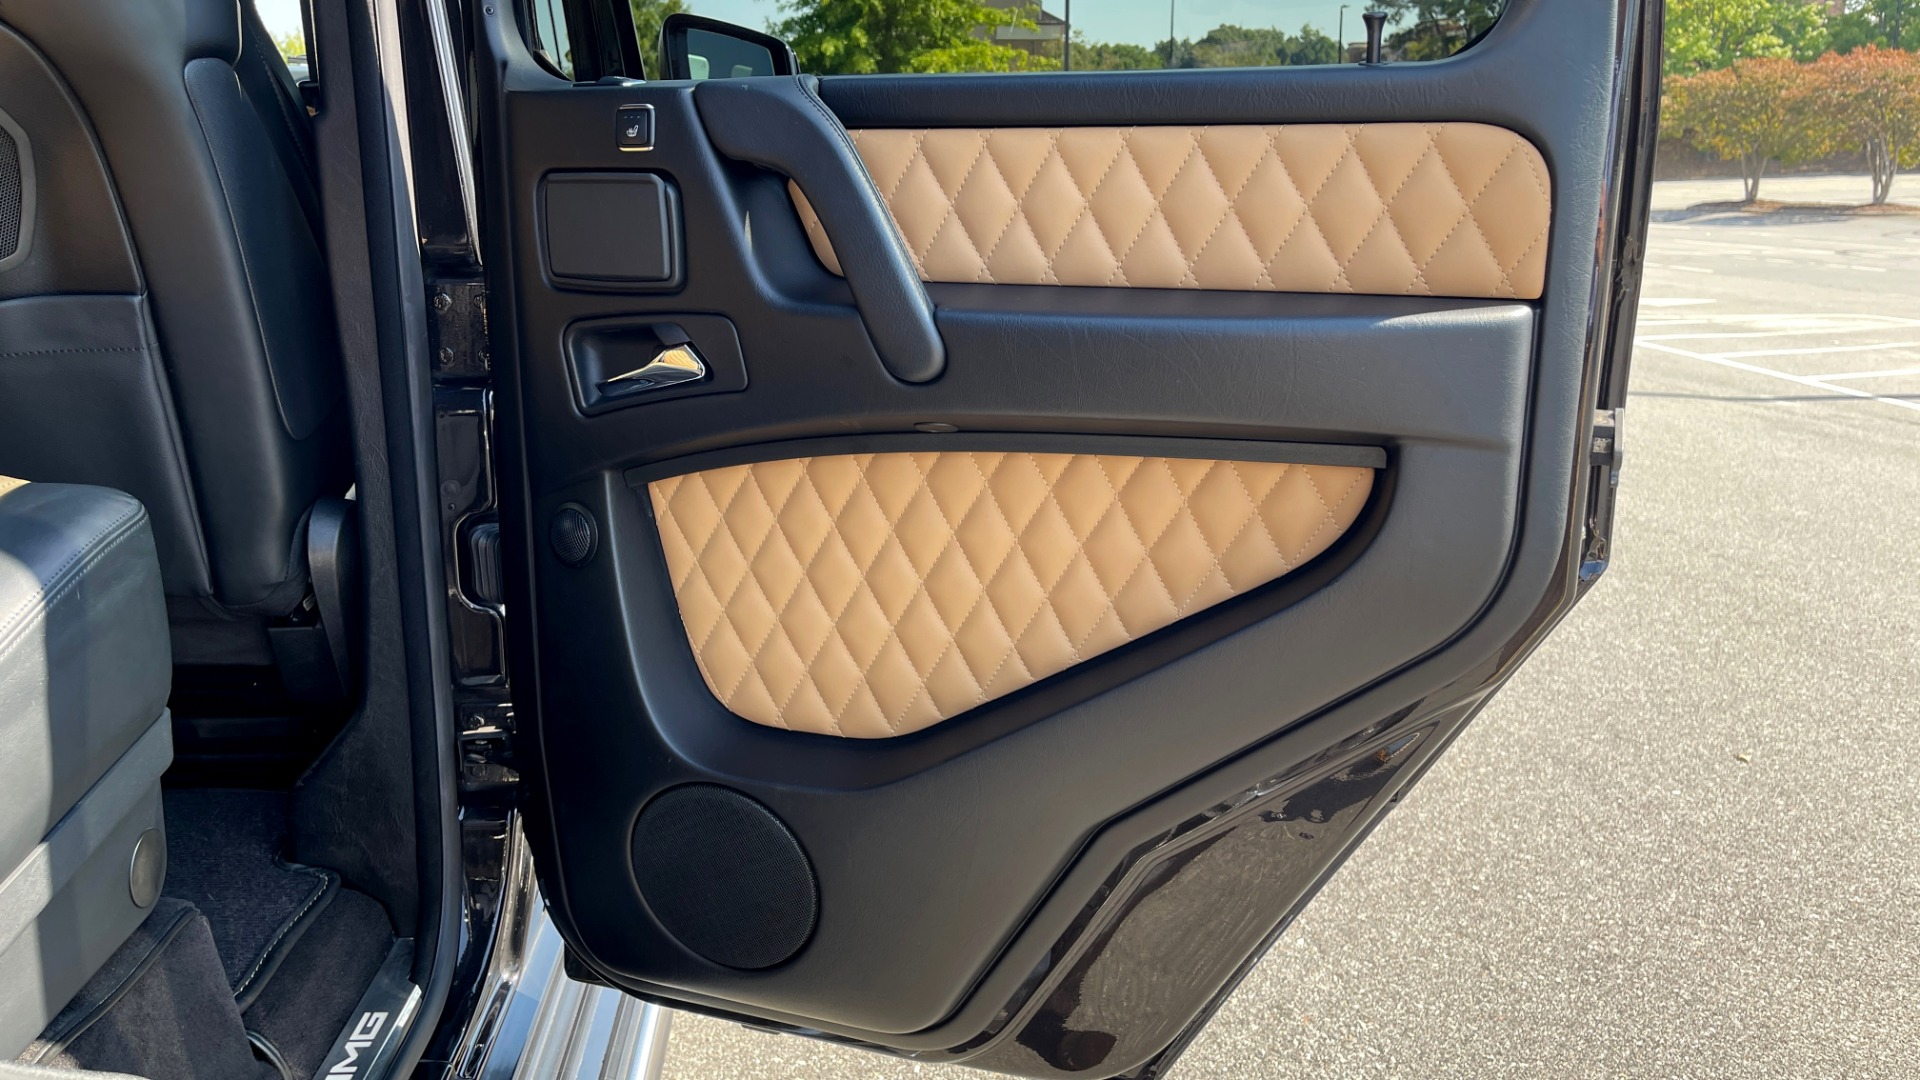 Used 2014 Mercedes-Benz G-CLASS G 63 AMG / DISGNO LEATHER / NAV / SUNROOF / REARVIEW for sale $88,999 at Formula Imports in Charlotte NC 28227 55